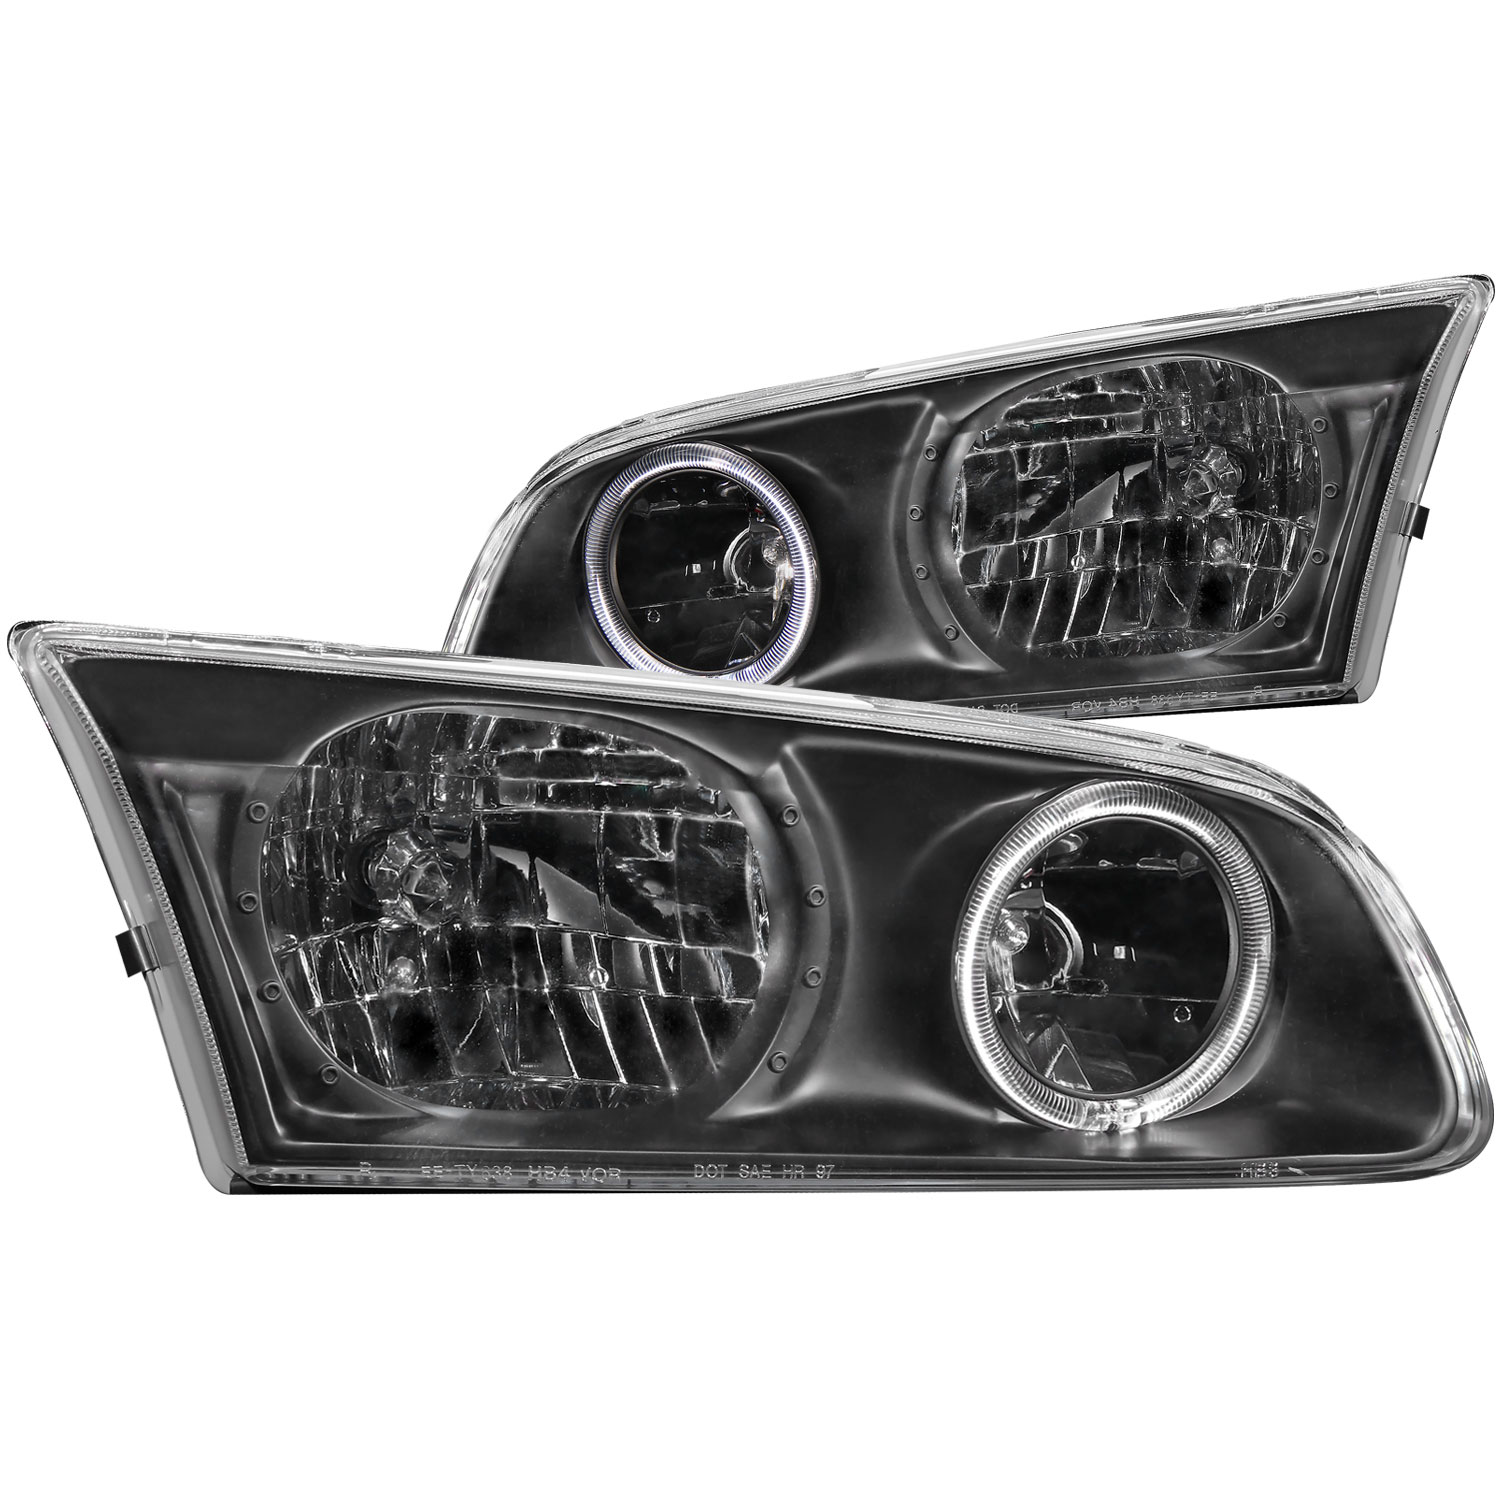 anzo 121123 anzo usa toyota camry crystal headlights w. Black Bedroom Furniture Sets. Home Design Ideas